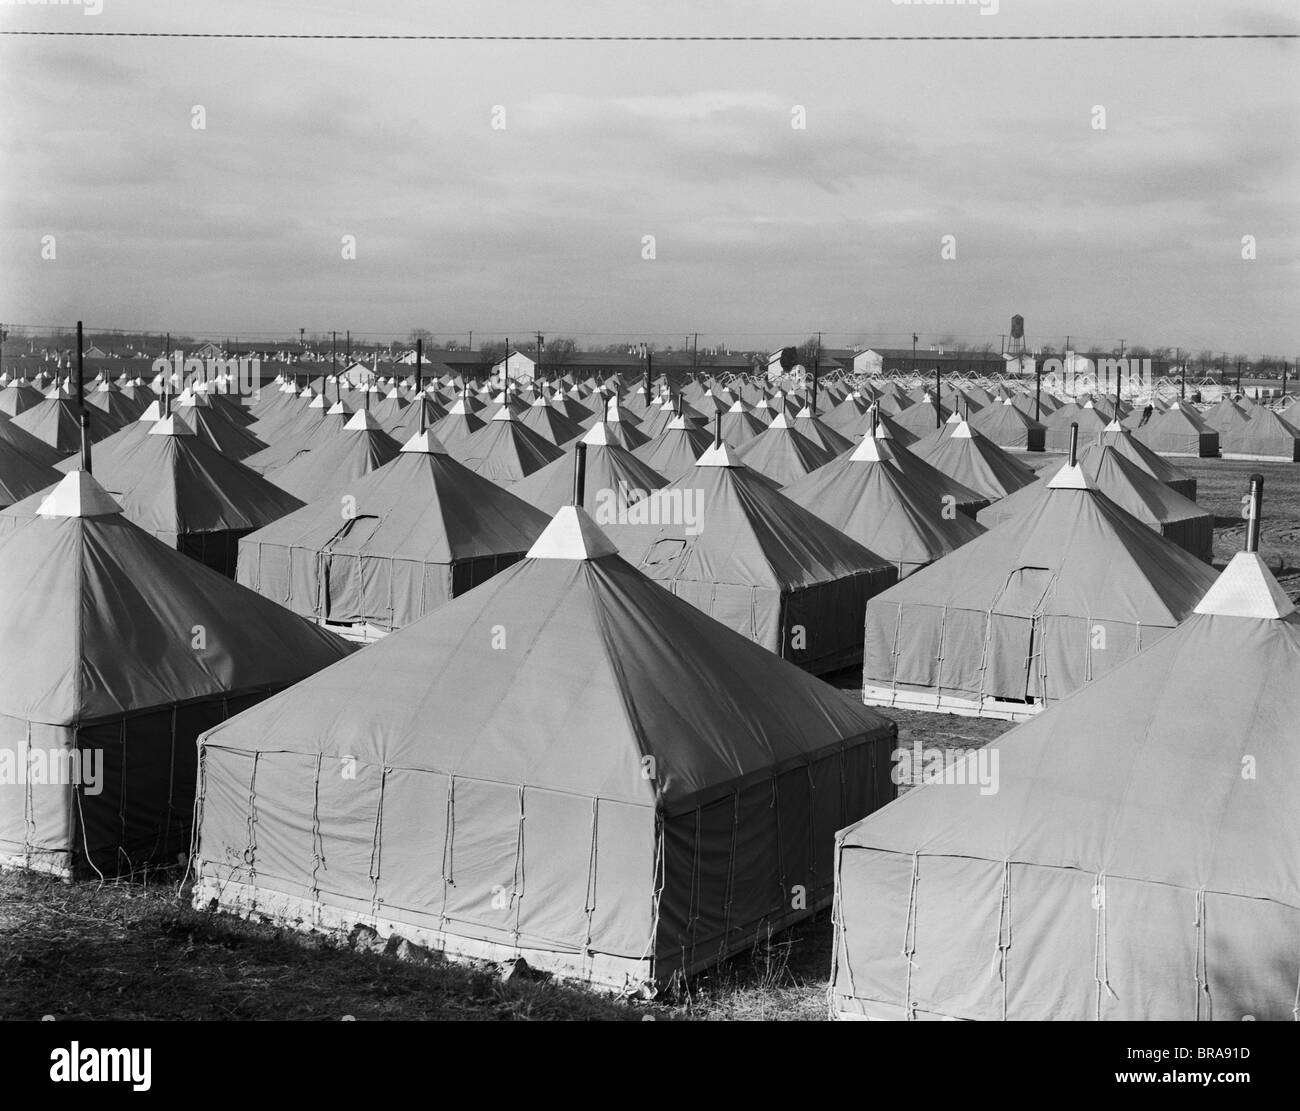 1940s TENT CITY MILITARY TRAINING QUARTERS FOR TROOPS WW2 FORT DIX NJ 44TH DIVISION NATIONAL GUARD & 1940s TENT CITY MILITARY TRAINING QUARTERS FOR TROOPS WW2 FORT DIX ...